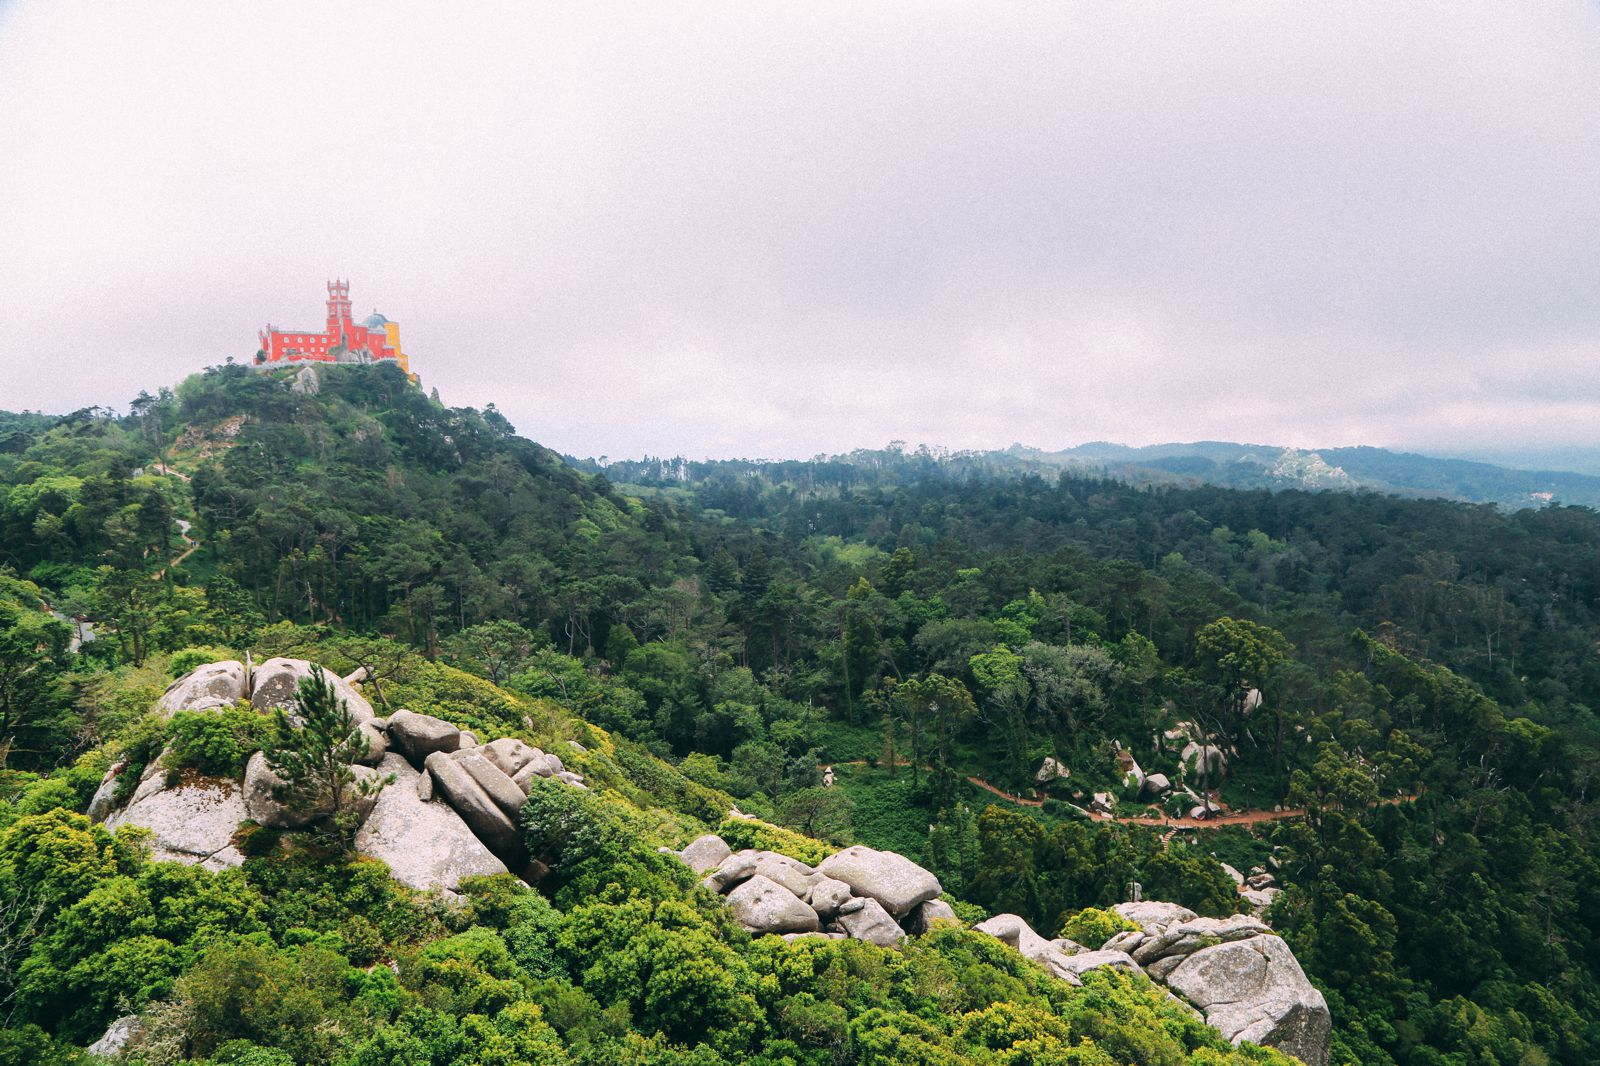 The Moorish Castle, Palace of Sintra And Pena Park – 3 Beautiful Places To See In Sintra, Portugal (22)